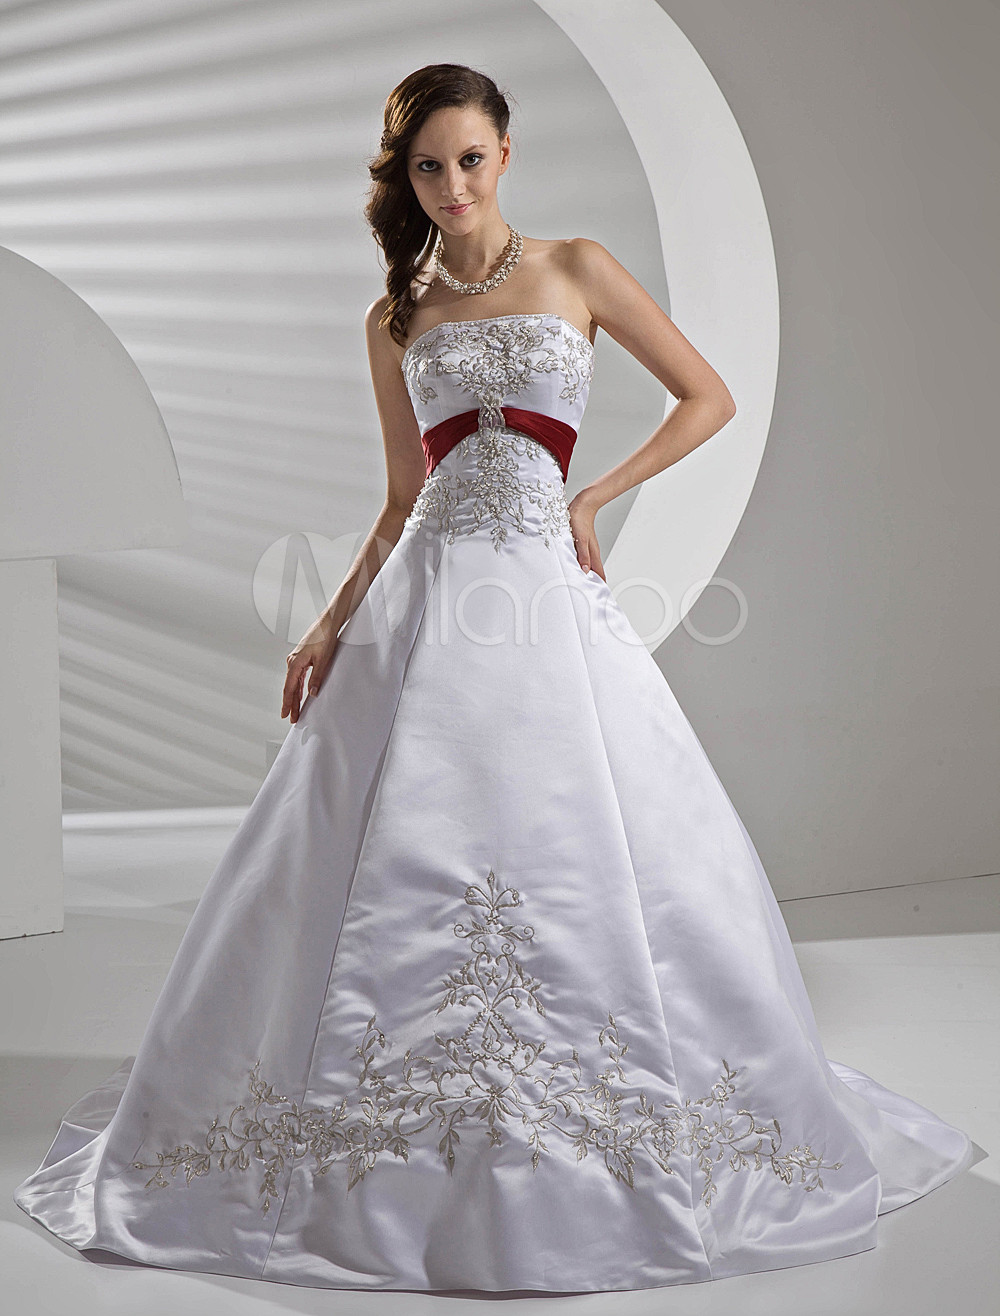 White Wedding Gown Strapless Sash Bridal Dress Embroidered Beading Satin Wedding Dress With Train